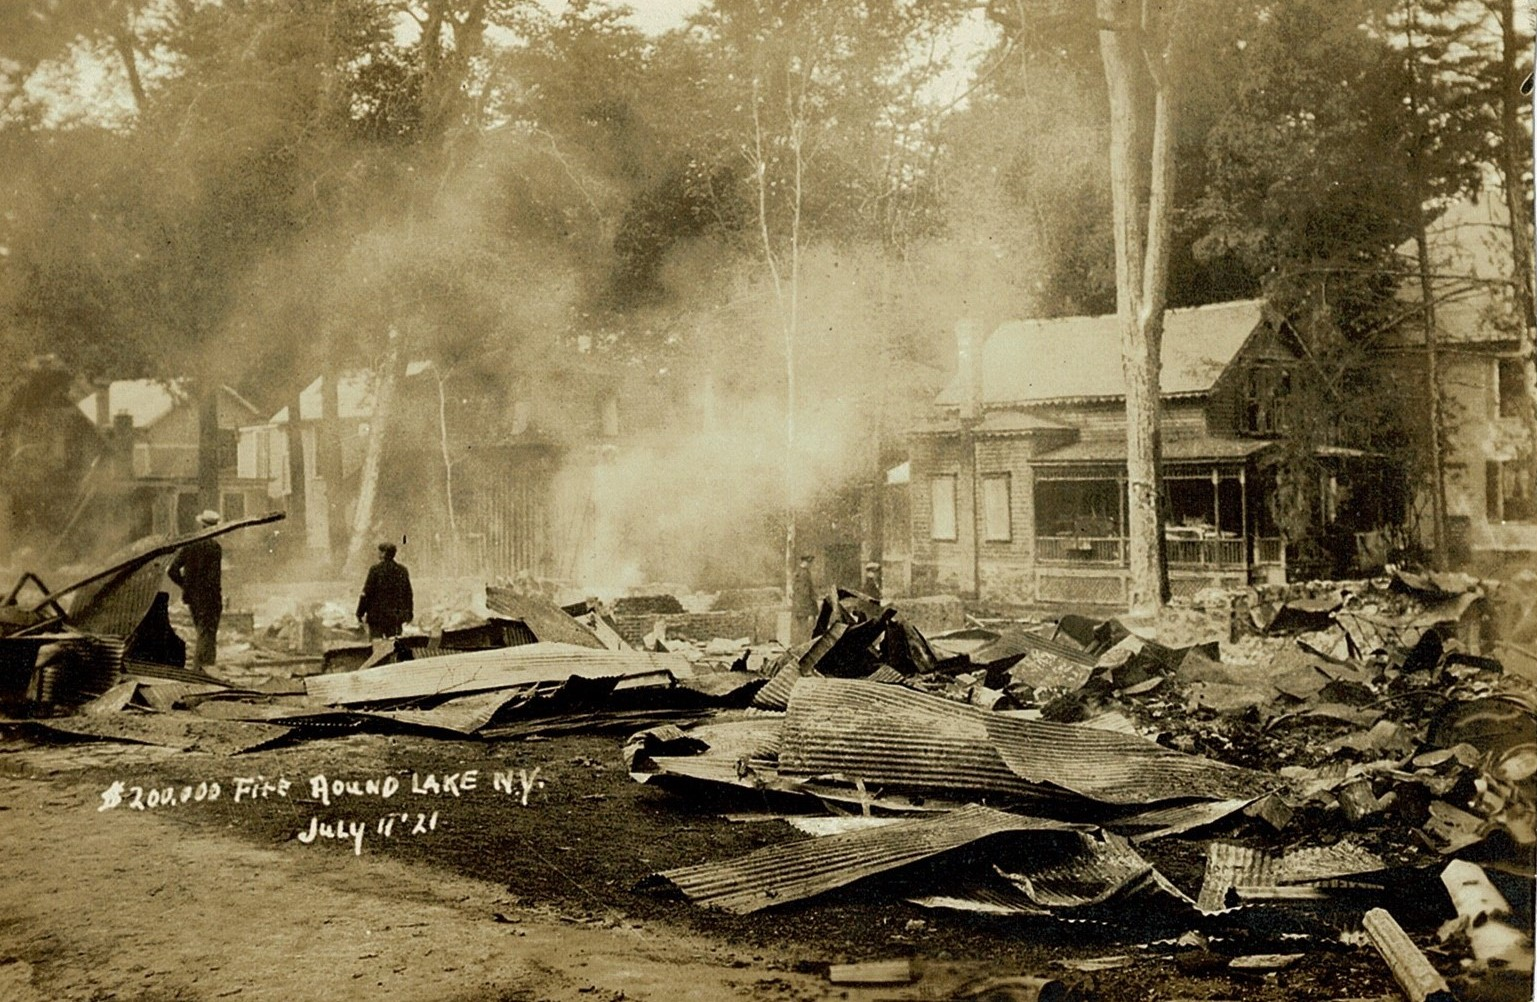 Great Fire of 1921